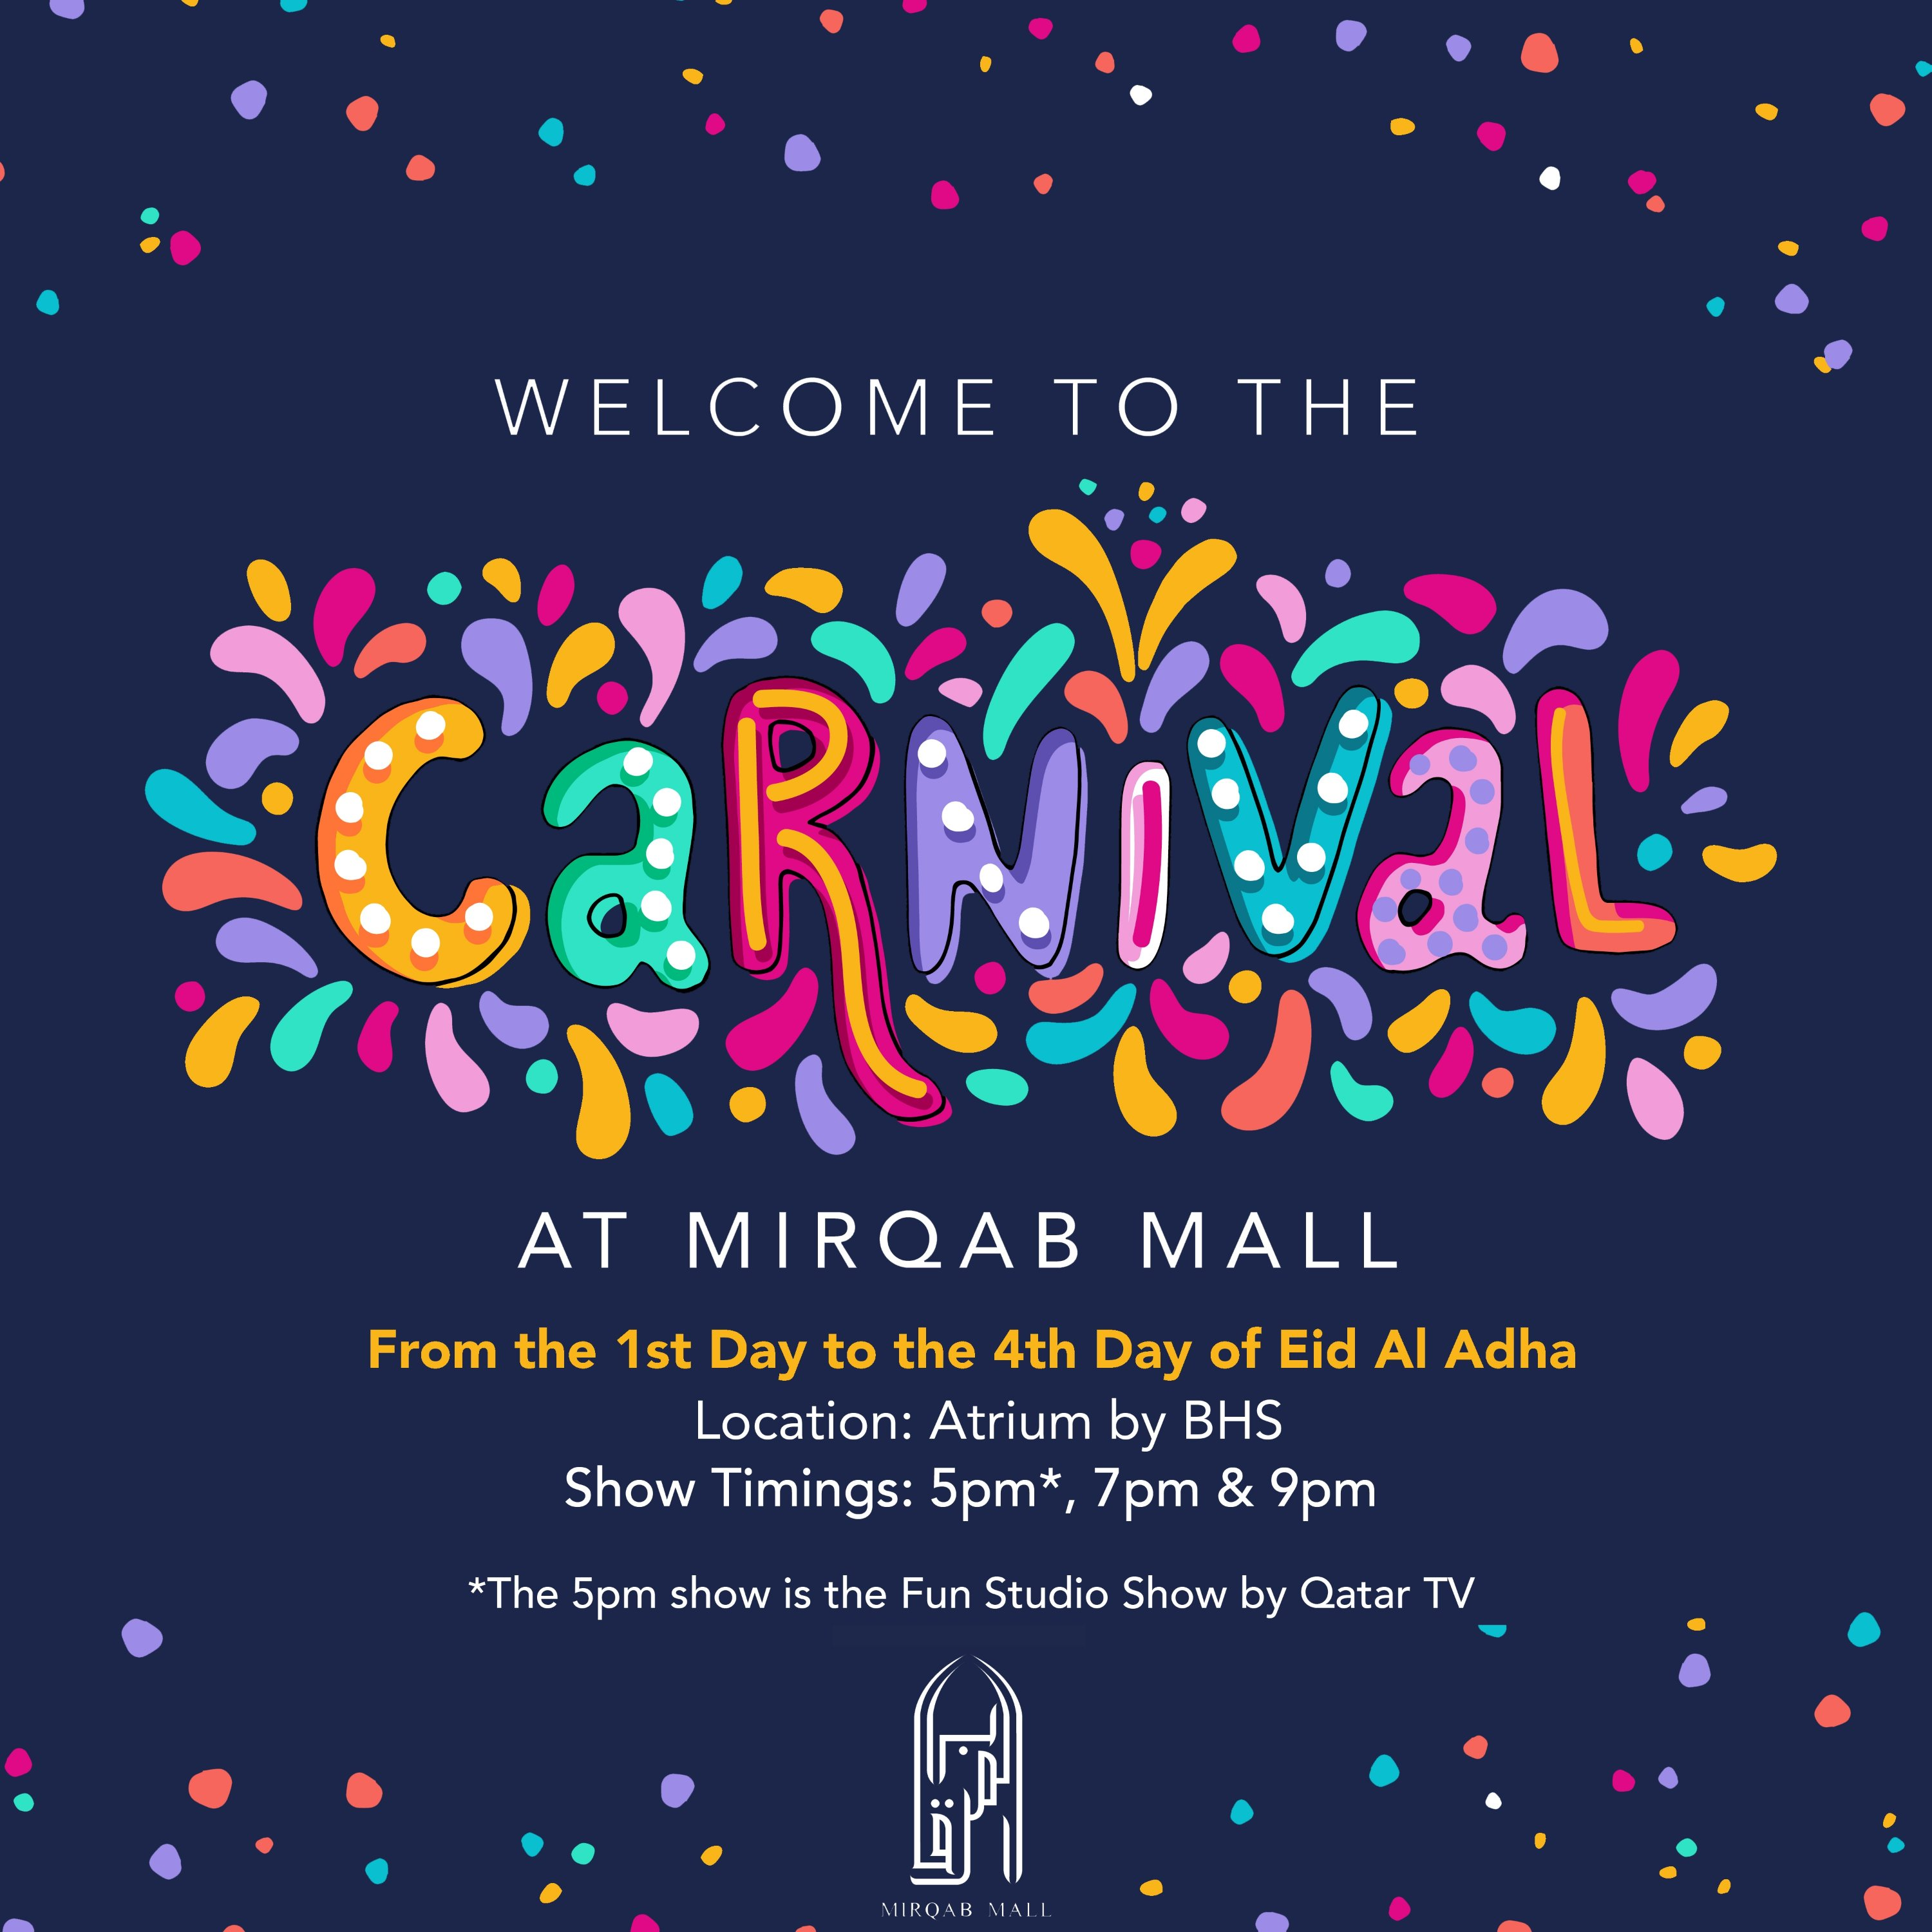 Mirqab Mall Brings the Carnival to Doha for Eid Al Adha